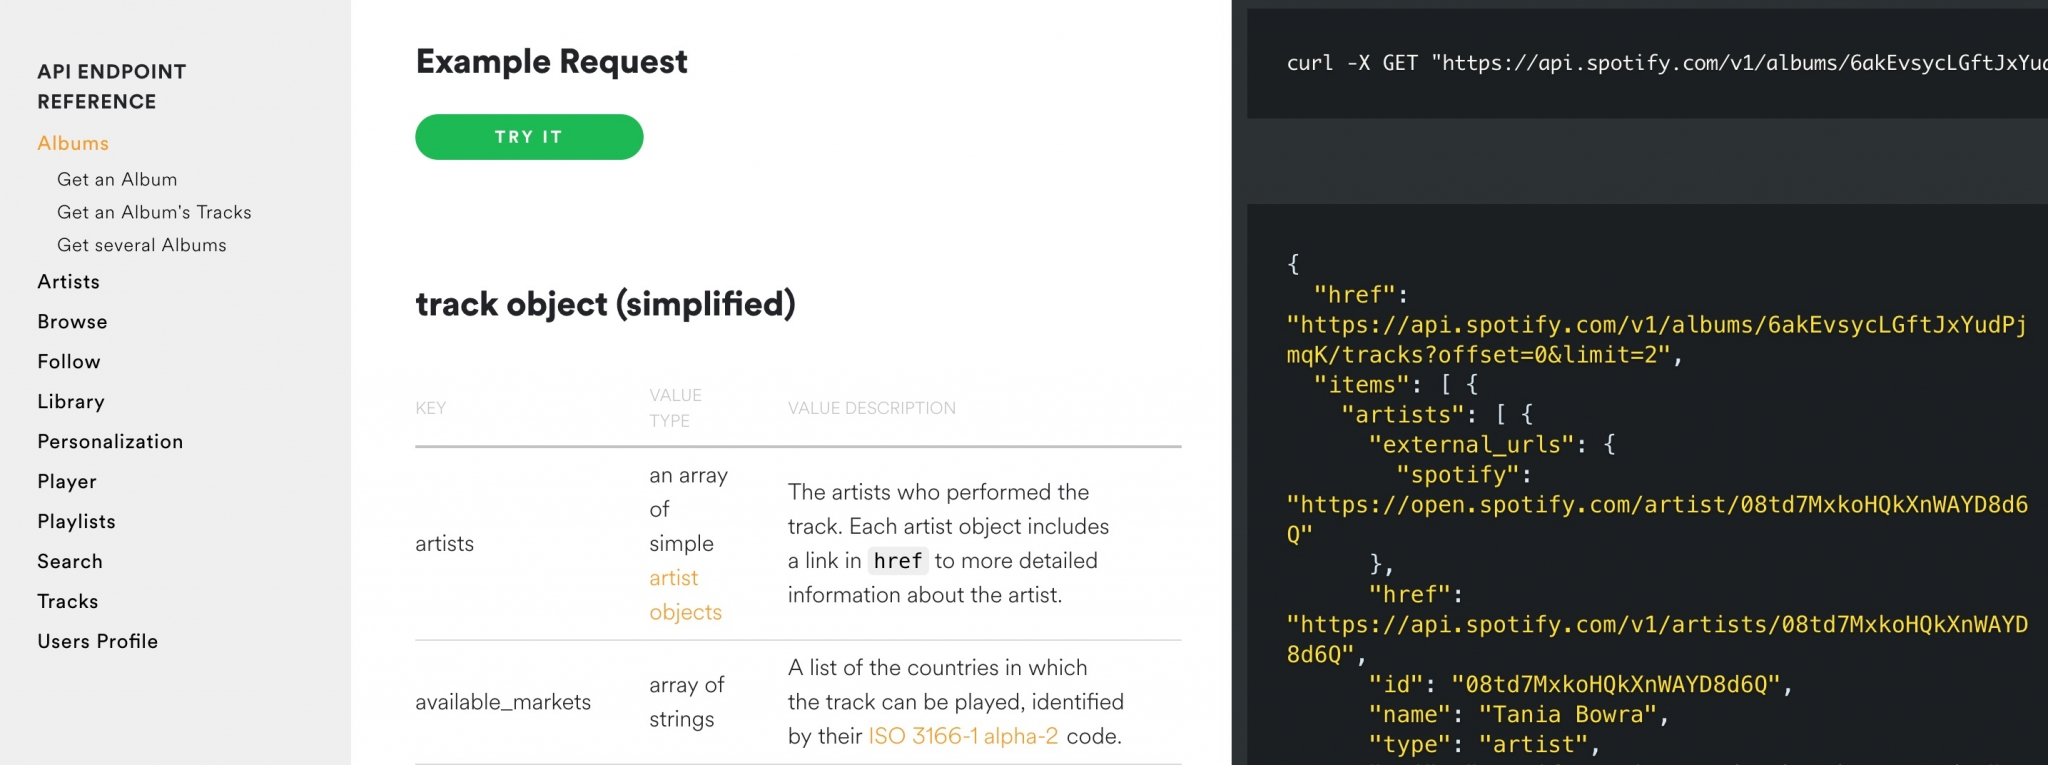 Analyzing the API docs and DX Patterns in the Best Media Developer